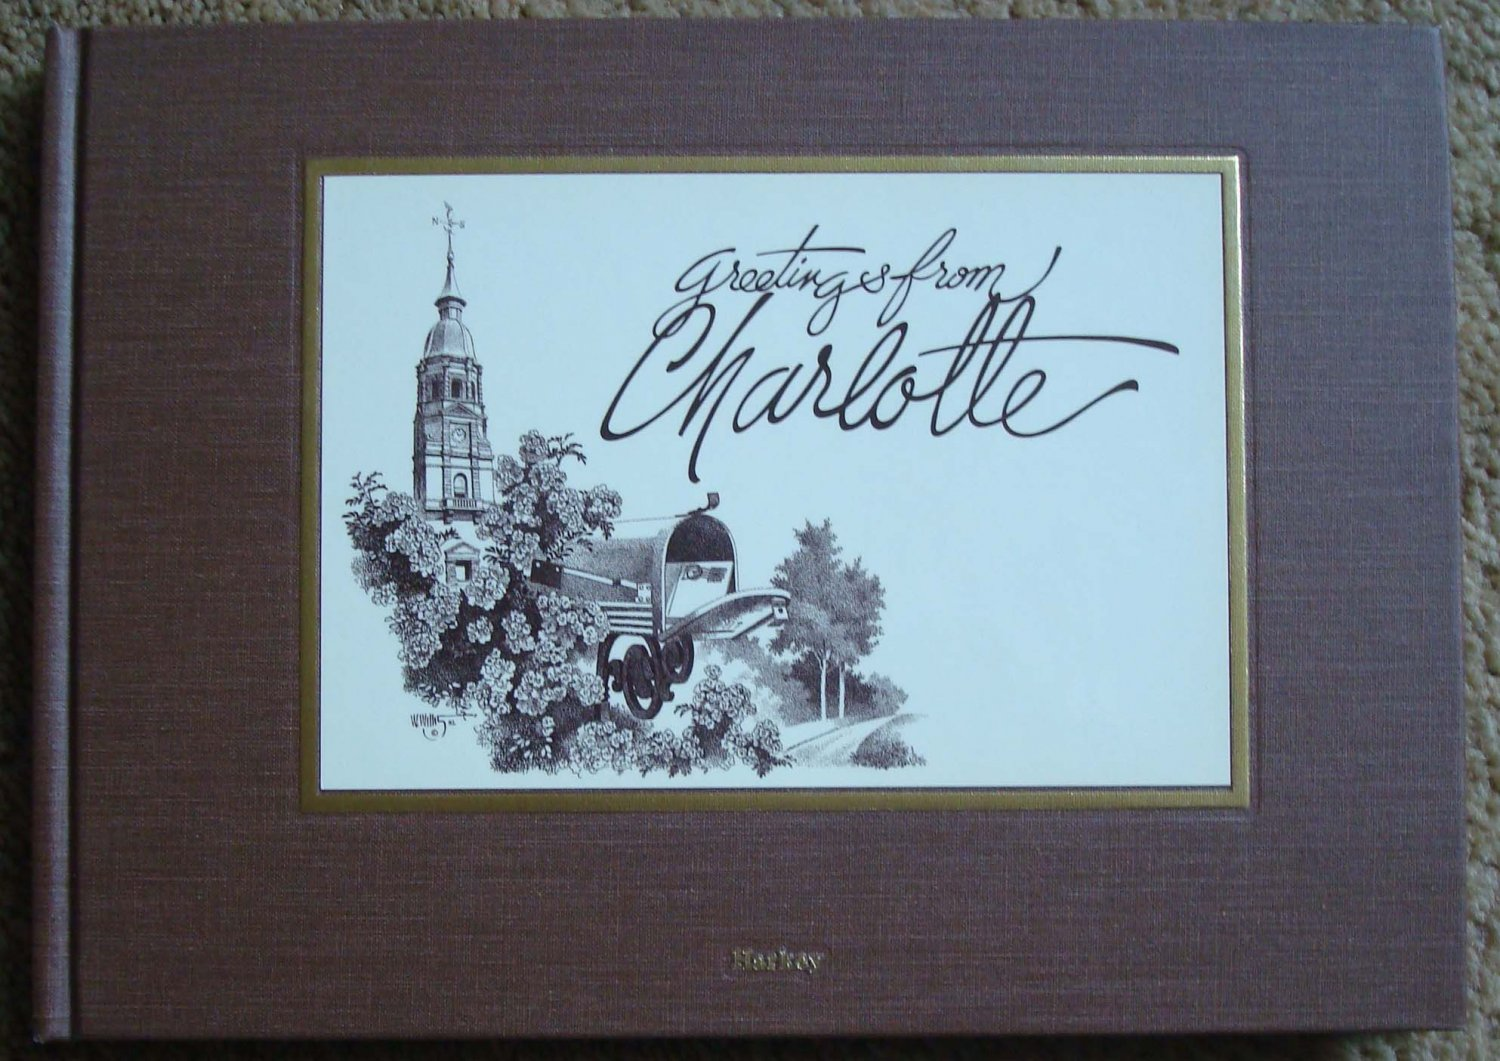 Greetings from Charlotte: A Pictorial Postcard History of Charlotte